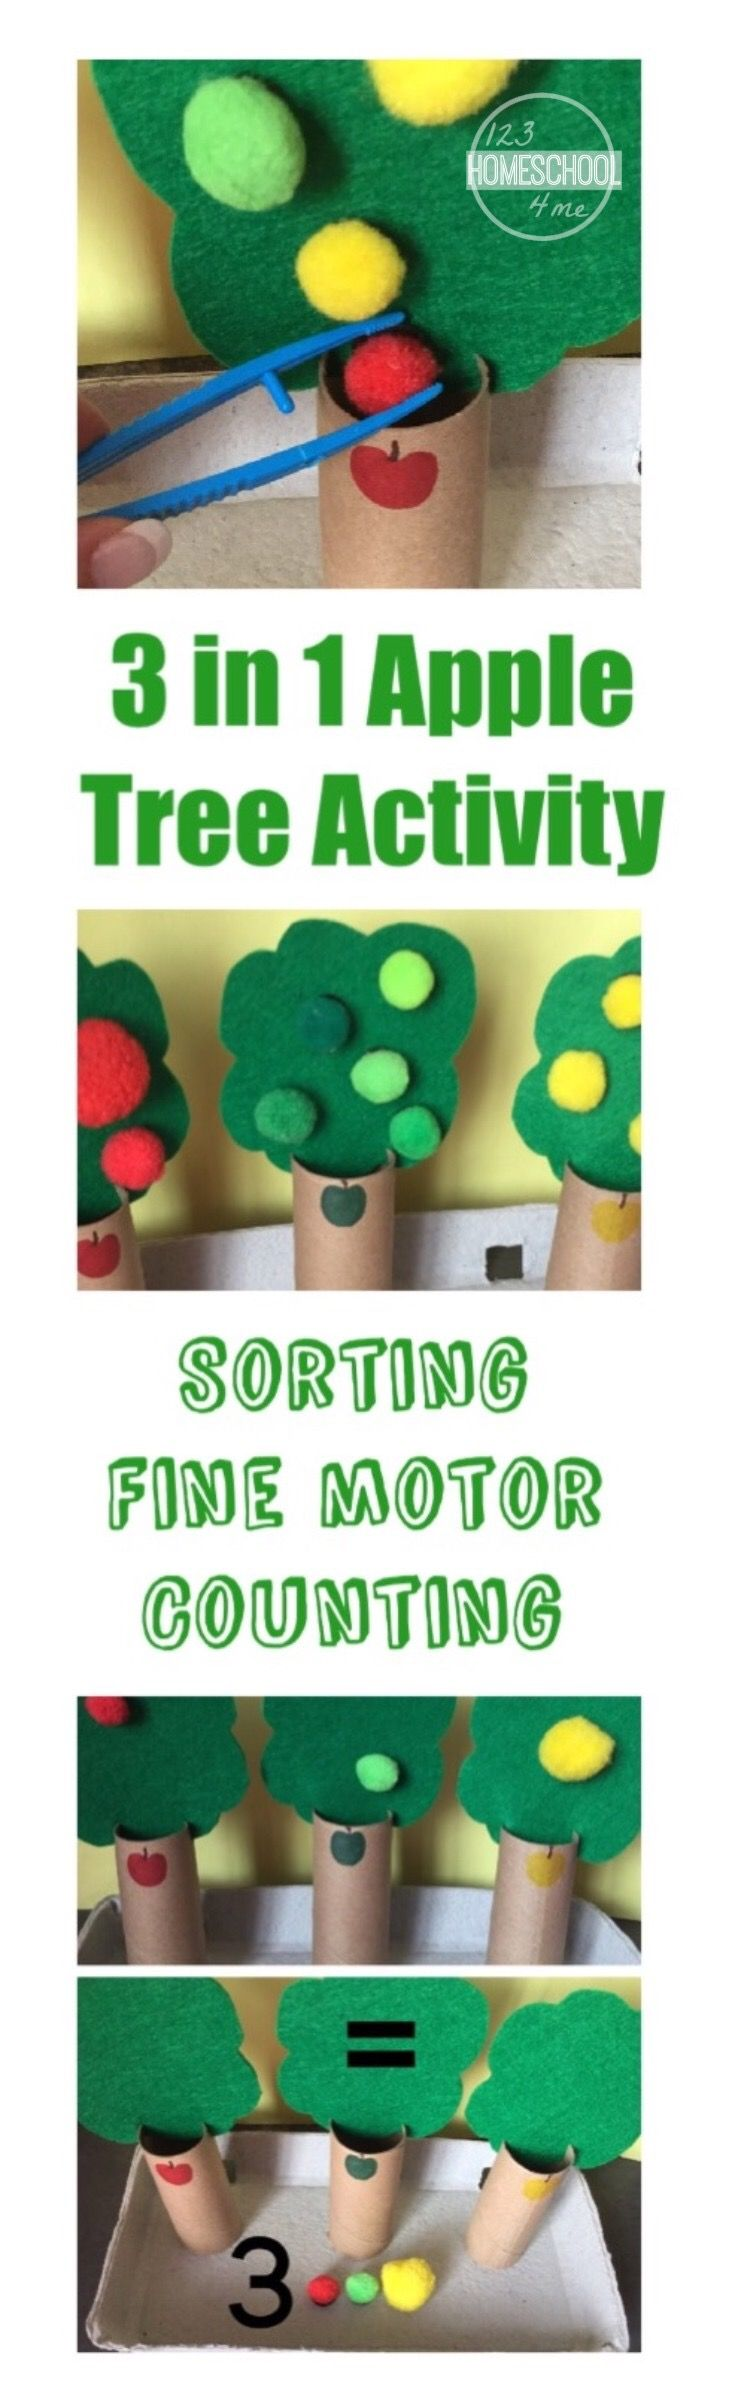 3-in-1 Apple Tree Activity for preschool, kindergarten - This is such a fun, hands on learning idea! SO CLEVER with several uses.